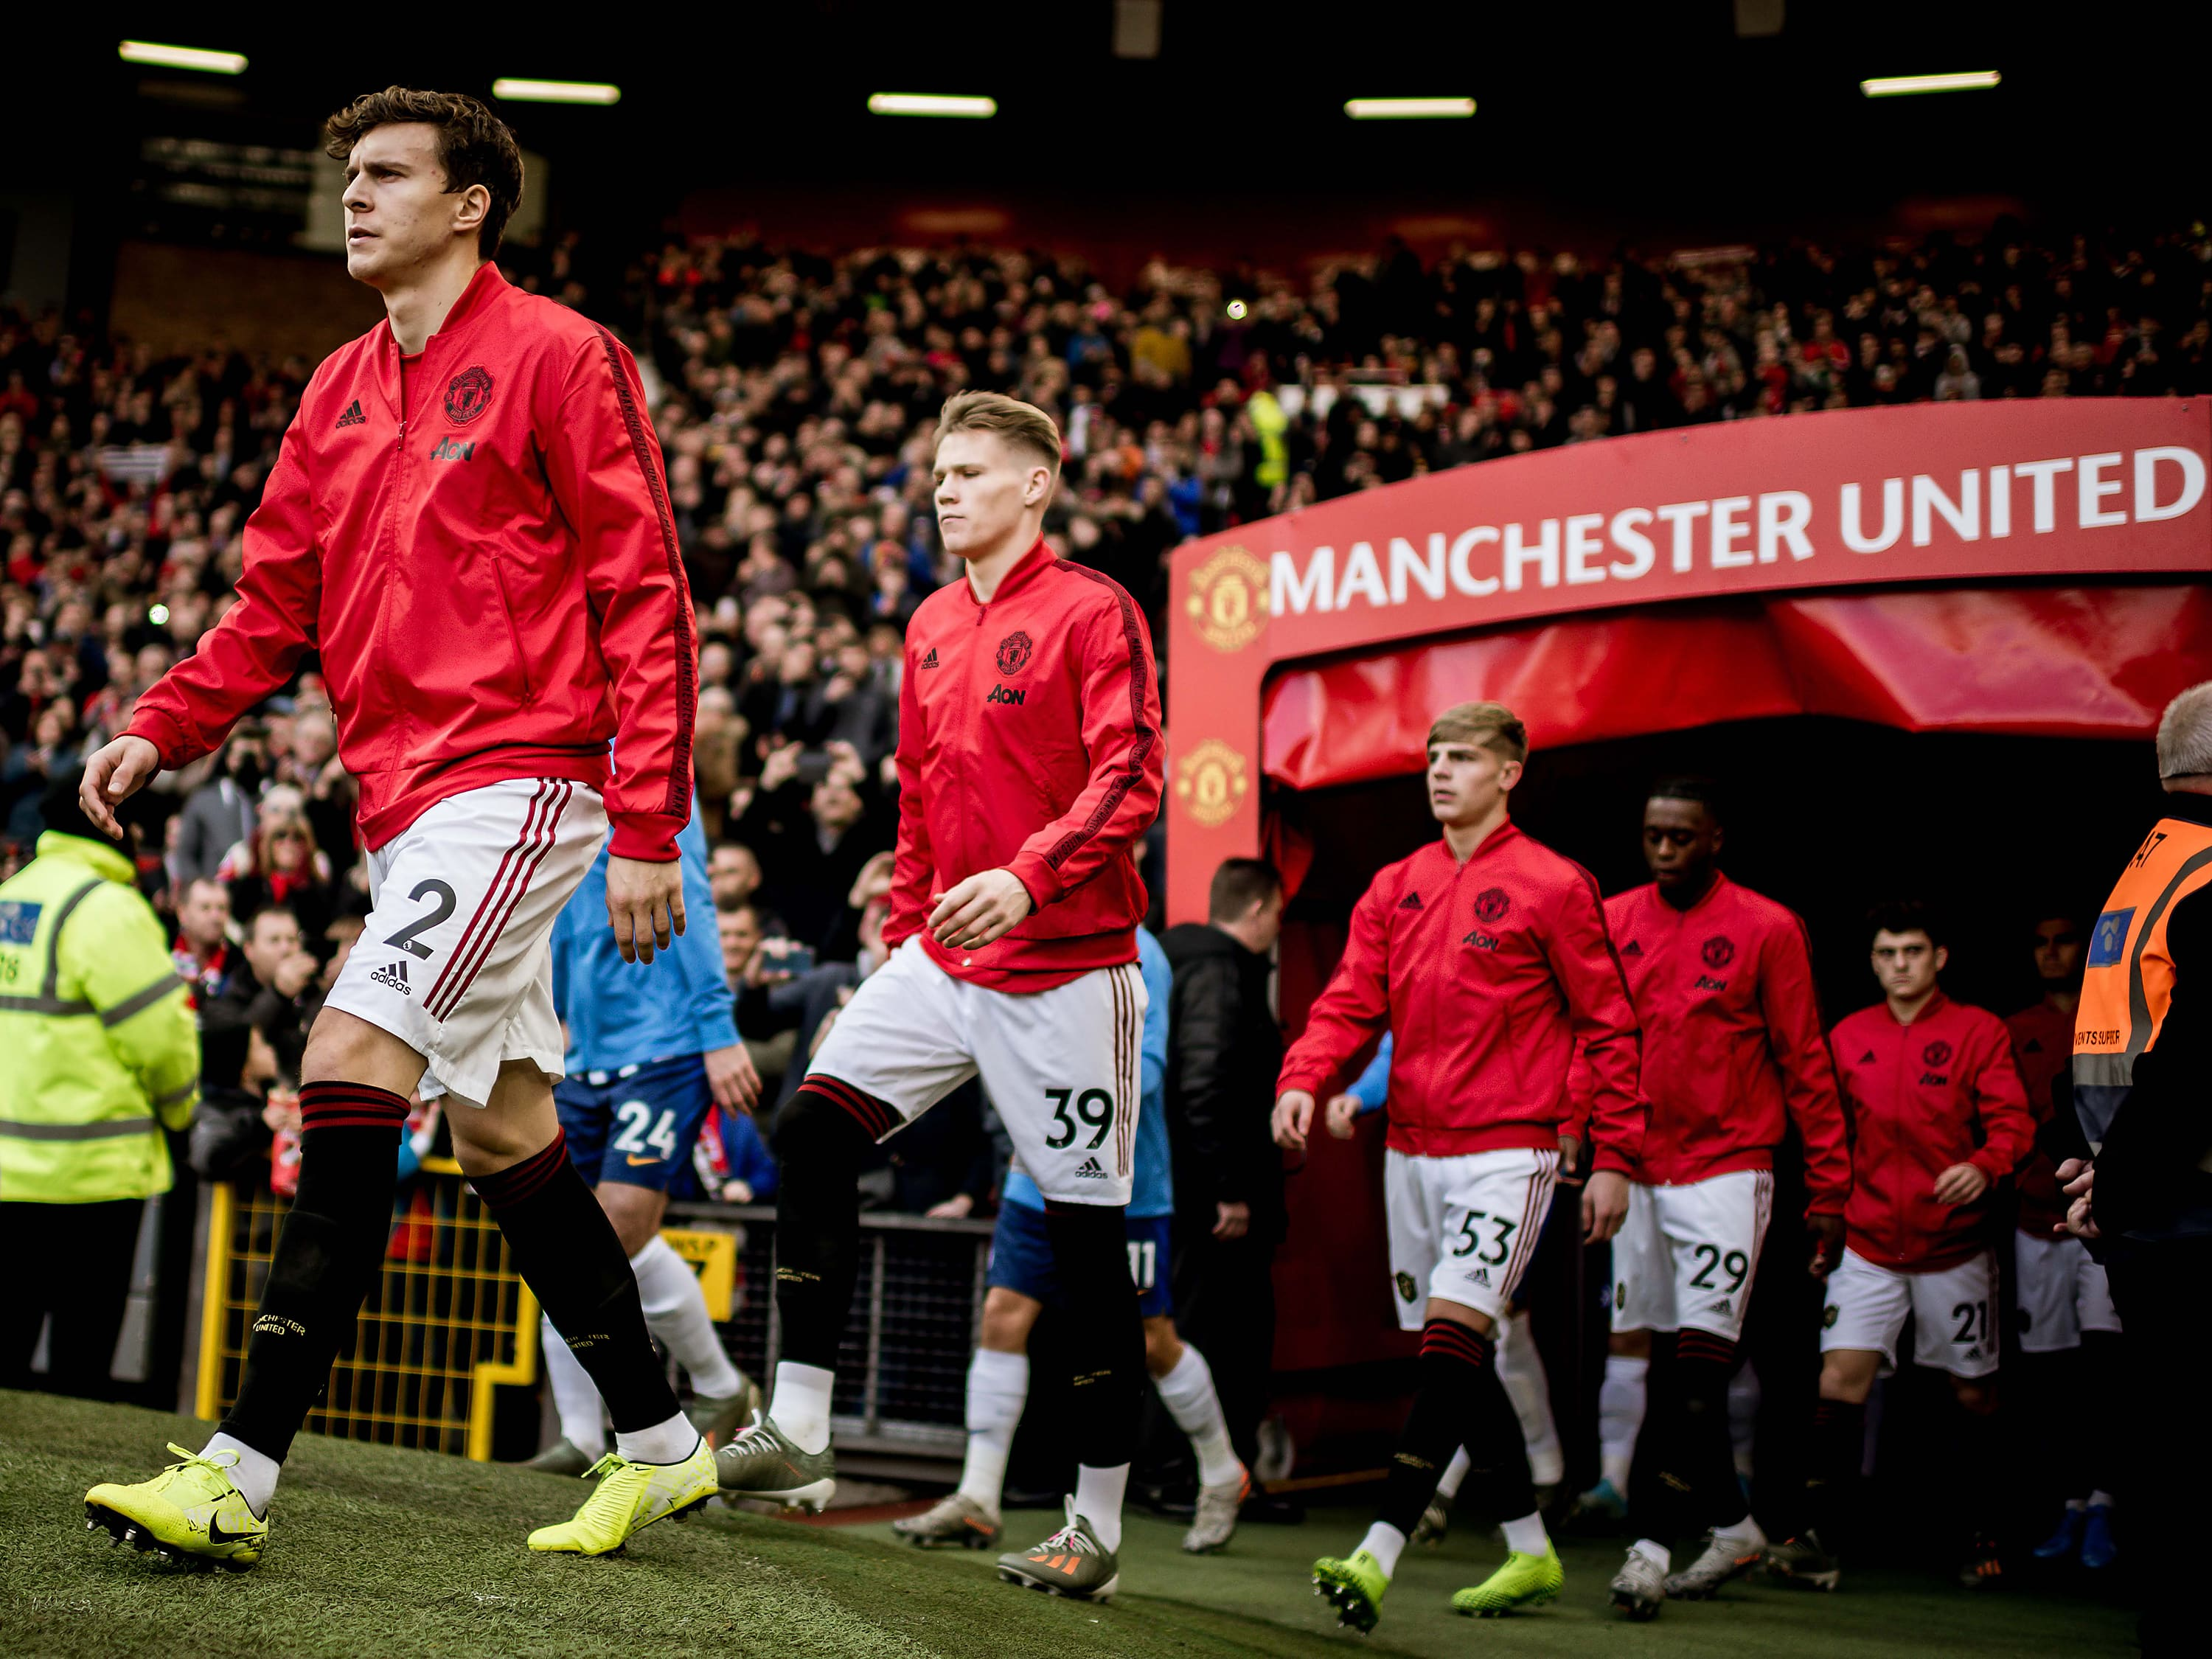 Hotel points can put you on a Manchester United charter plane — with VIP tickets to a match